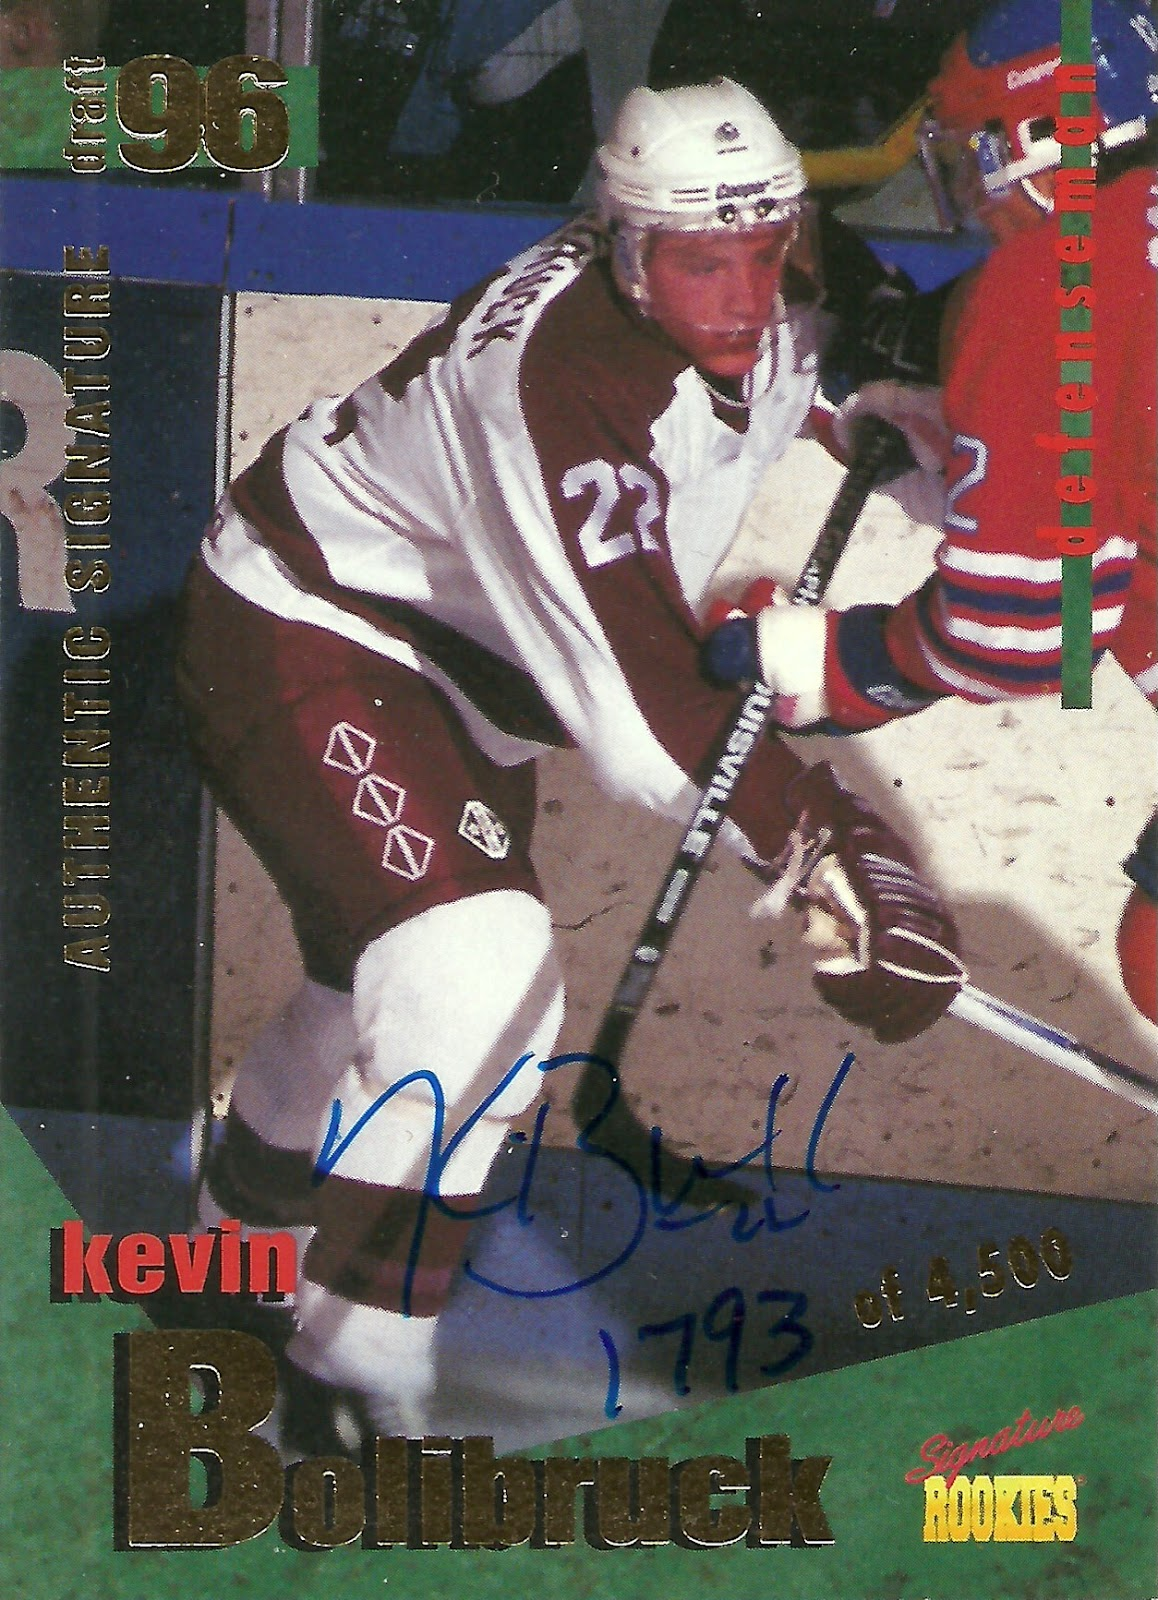 66edcf865 ... a wholly different set of 4500 signed cards (this one numbered 2350)  for/of relative nobodies, wearing the Petes' dark blue (away) uniform: